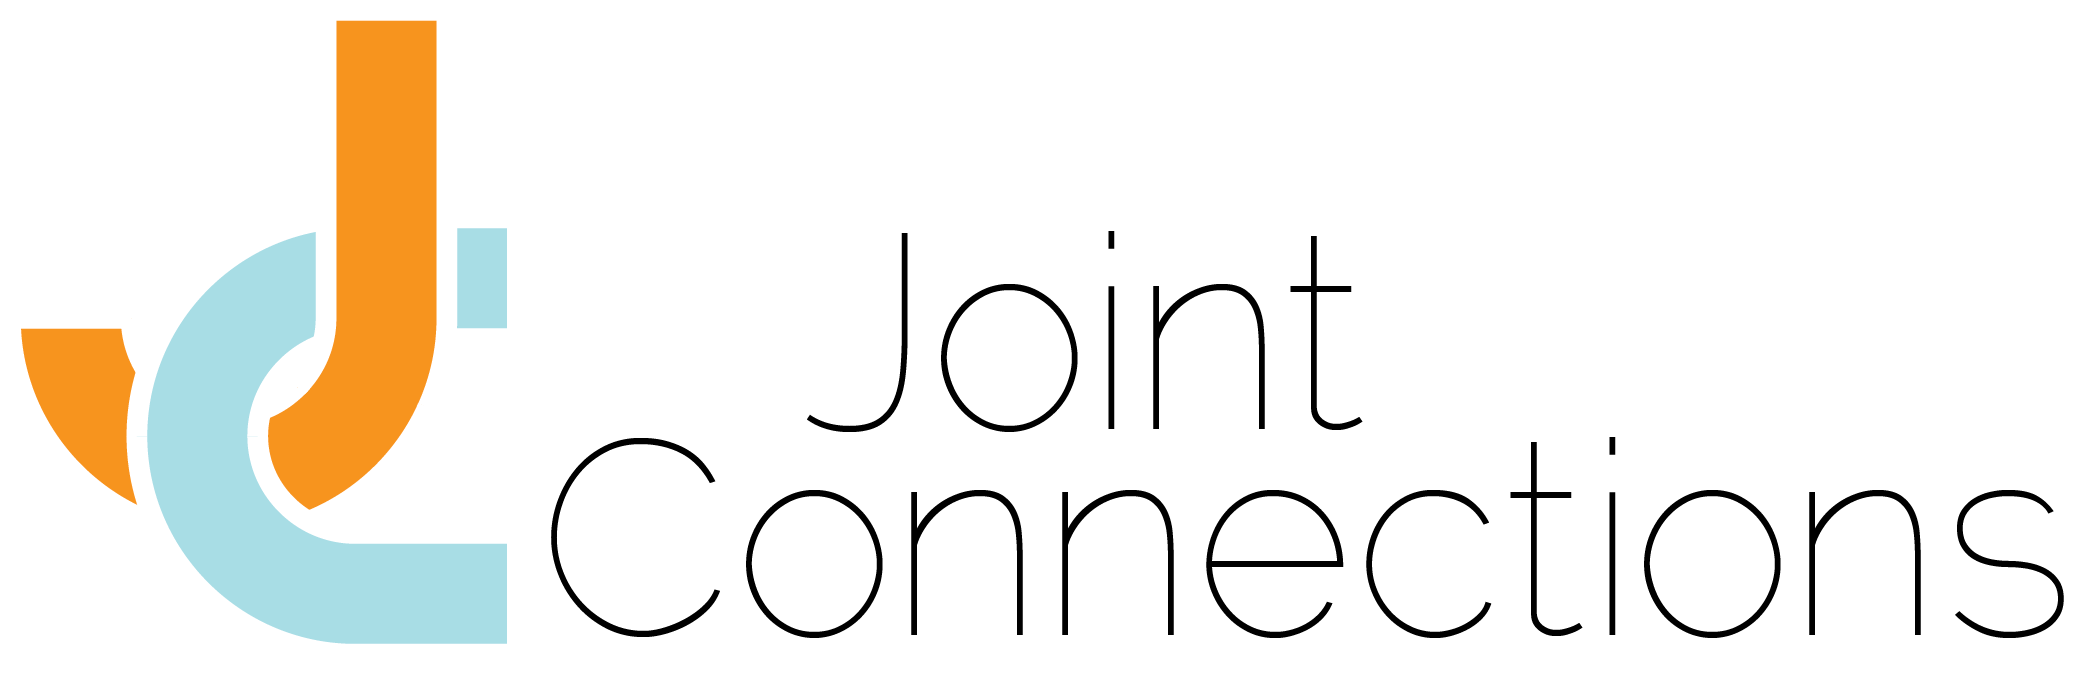 Joint_Connections_logo.png